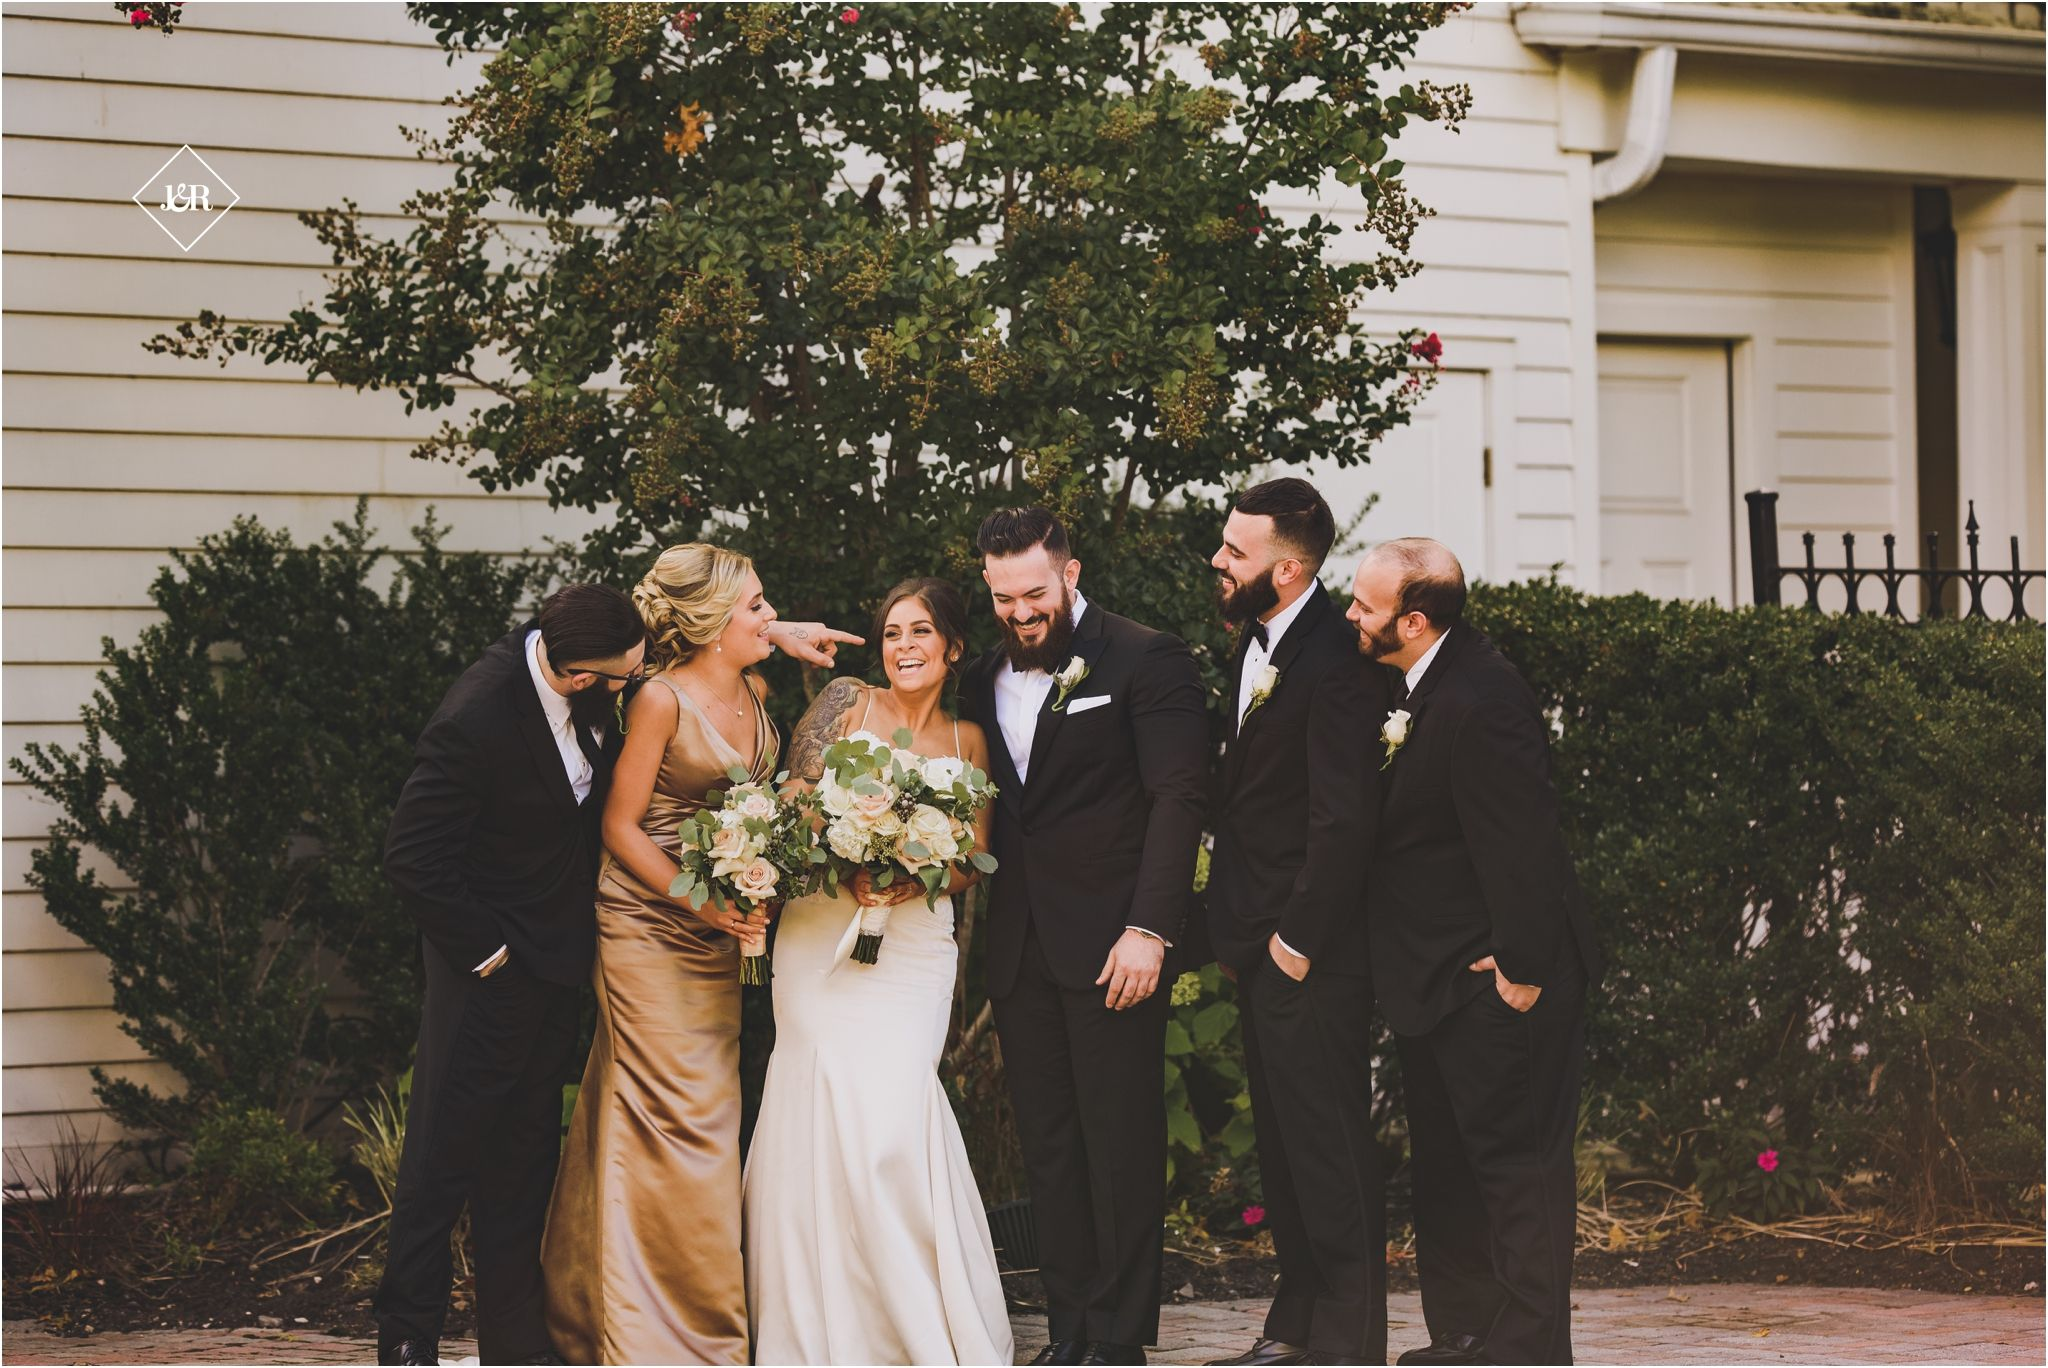 Grand oaks country club wedding bridal party jrphotony